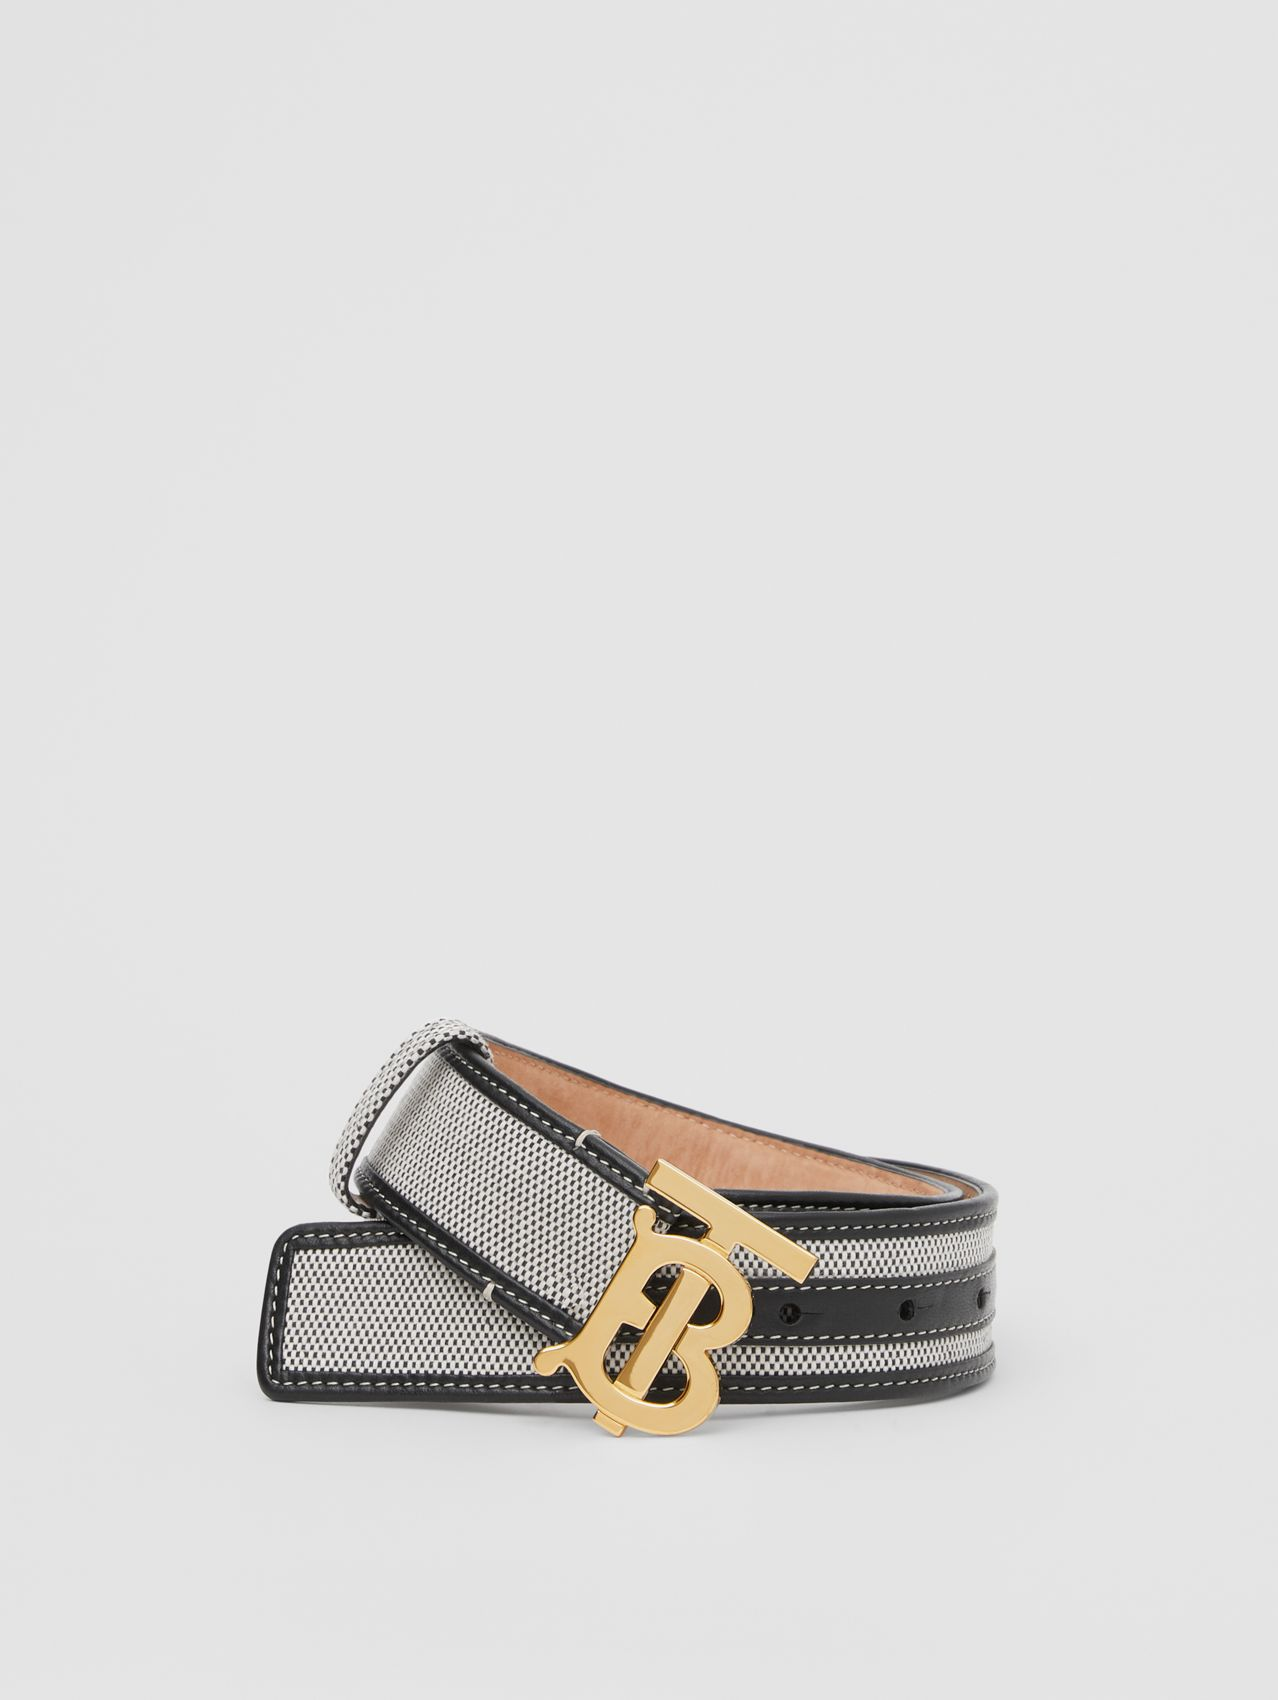 Monogram Motif Canvas and Leather Belt in Black